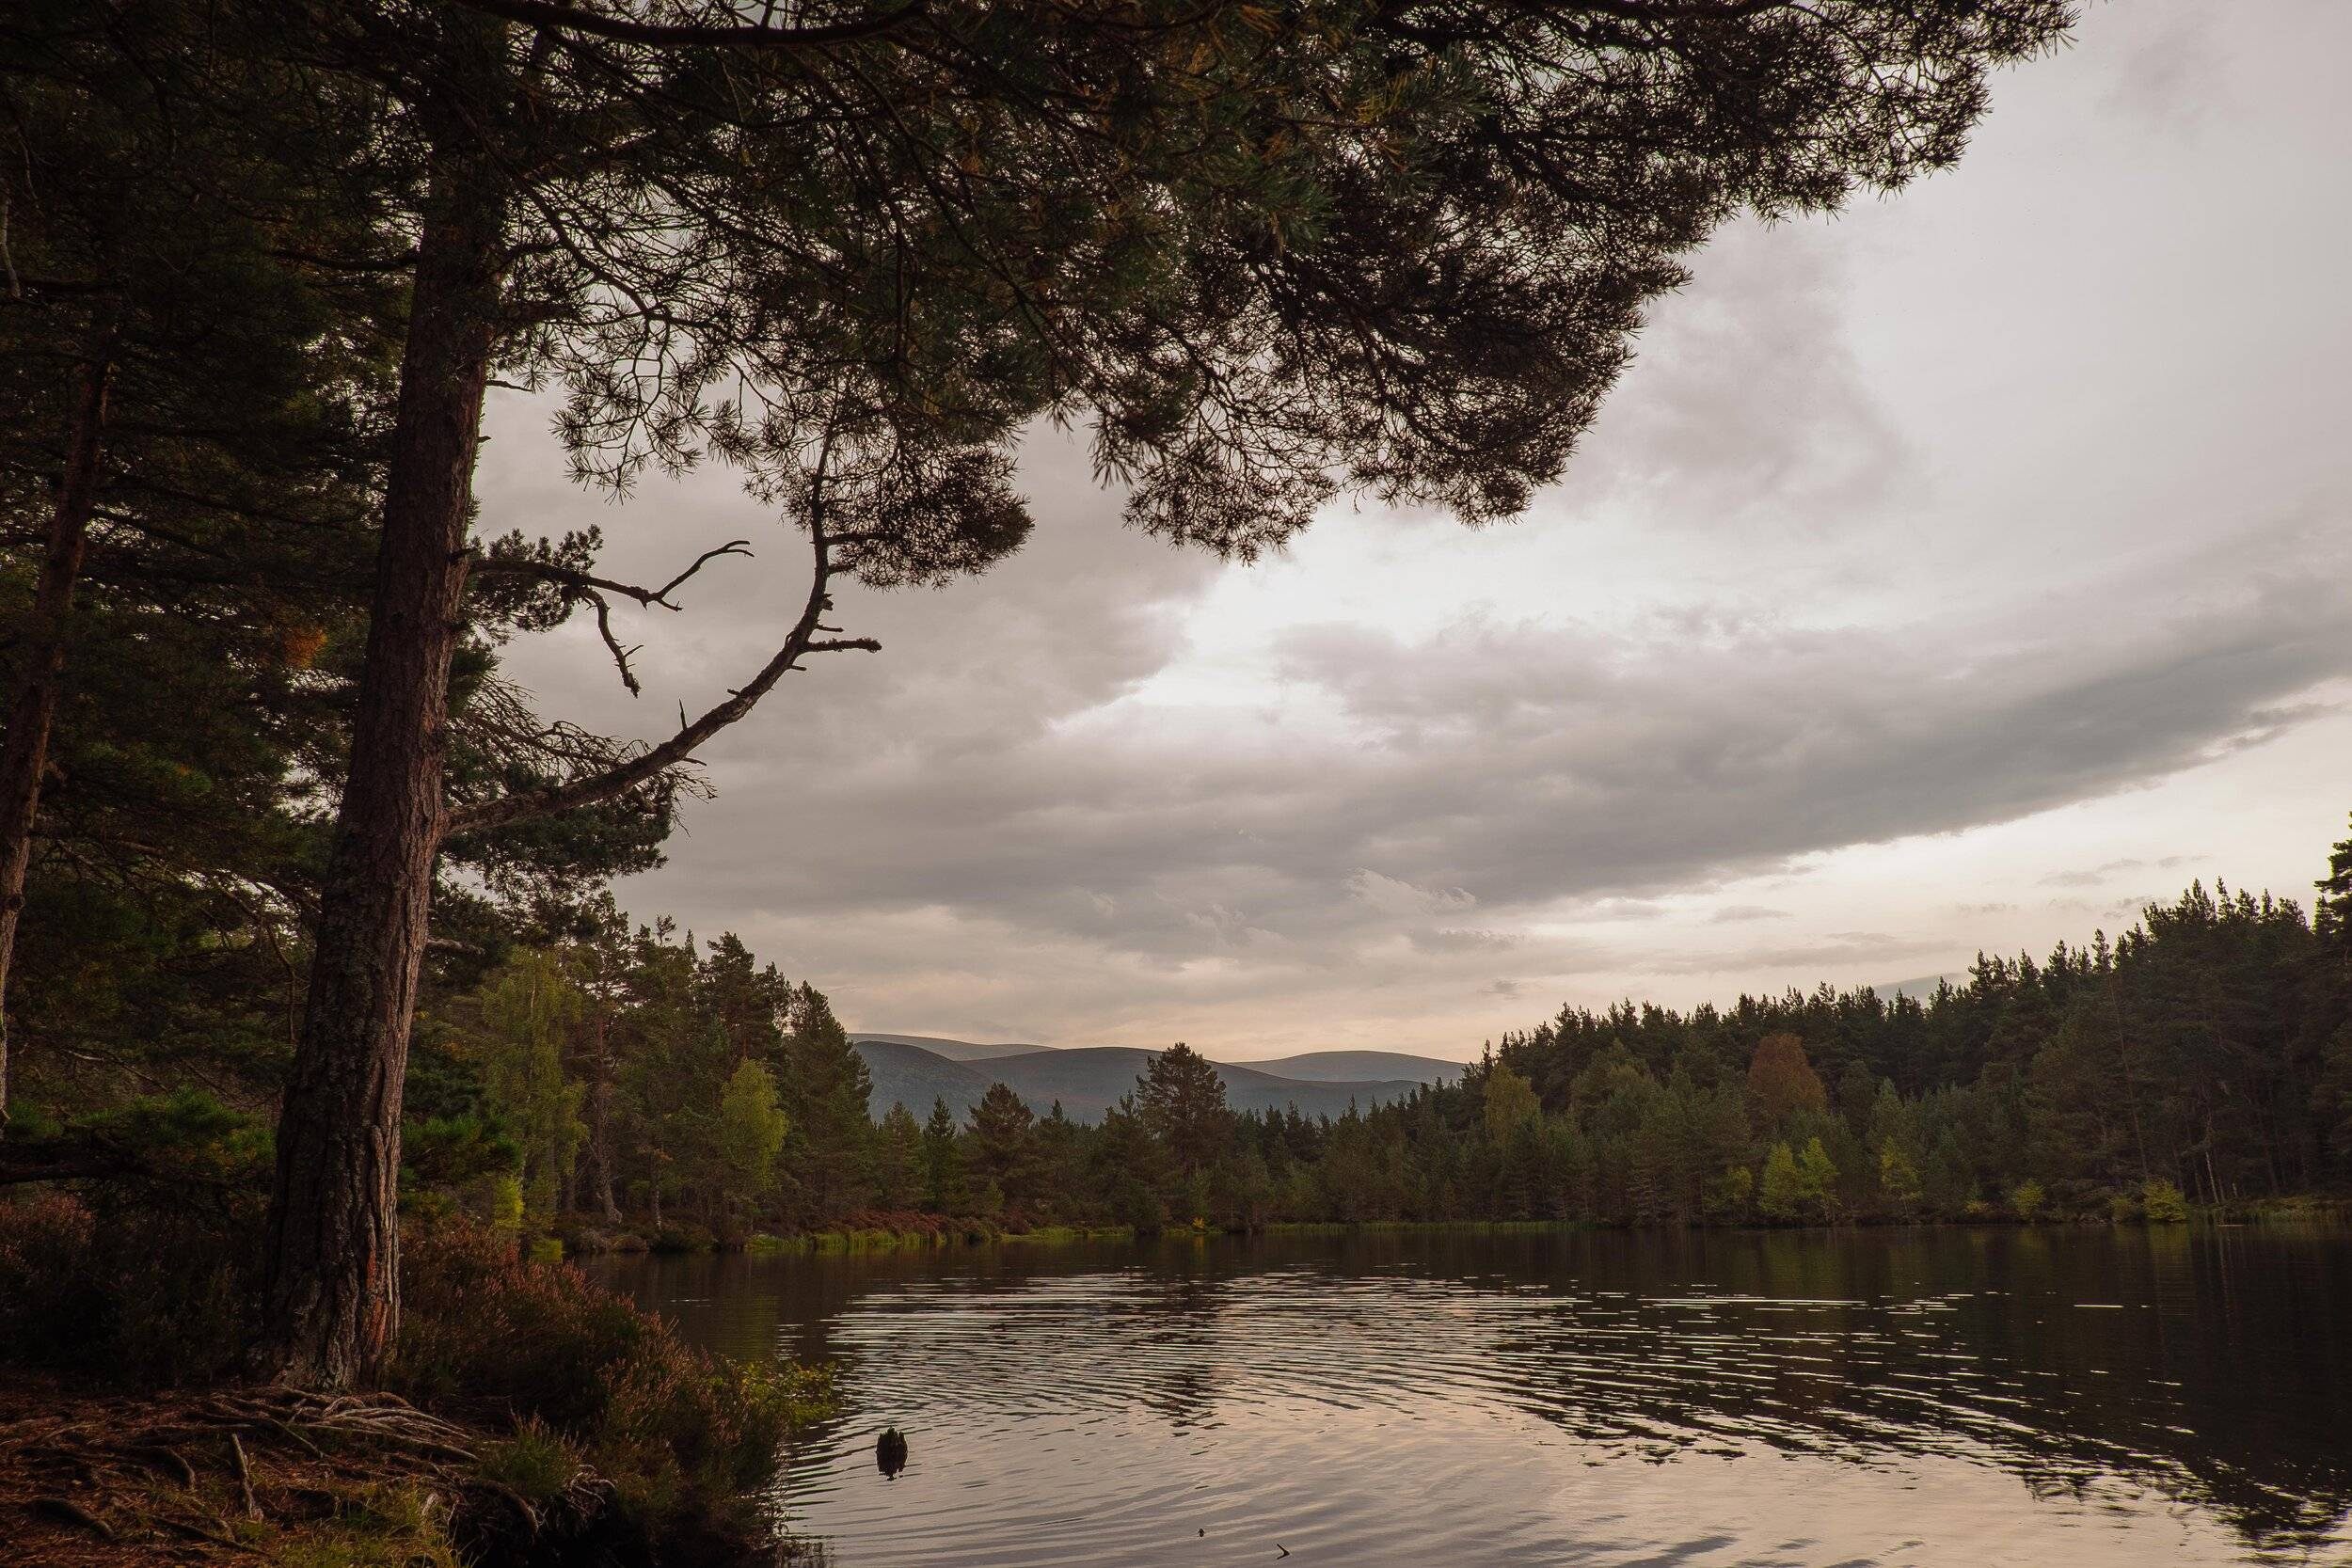 The black water of forest loch  surrounded by Scots pine and broadleaf trees